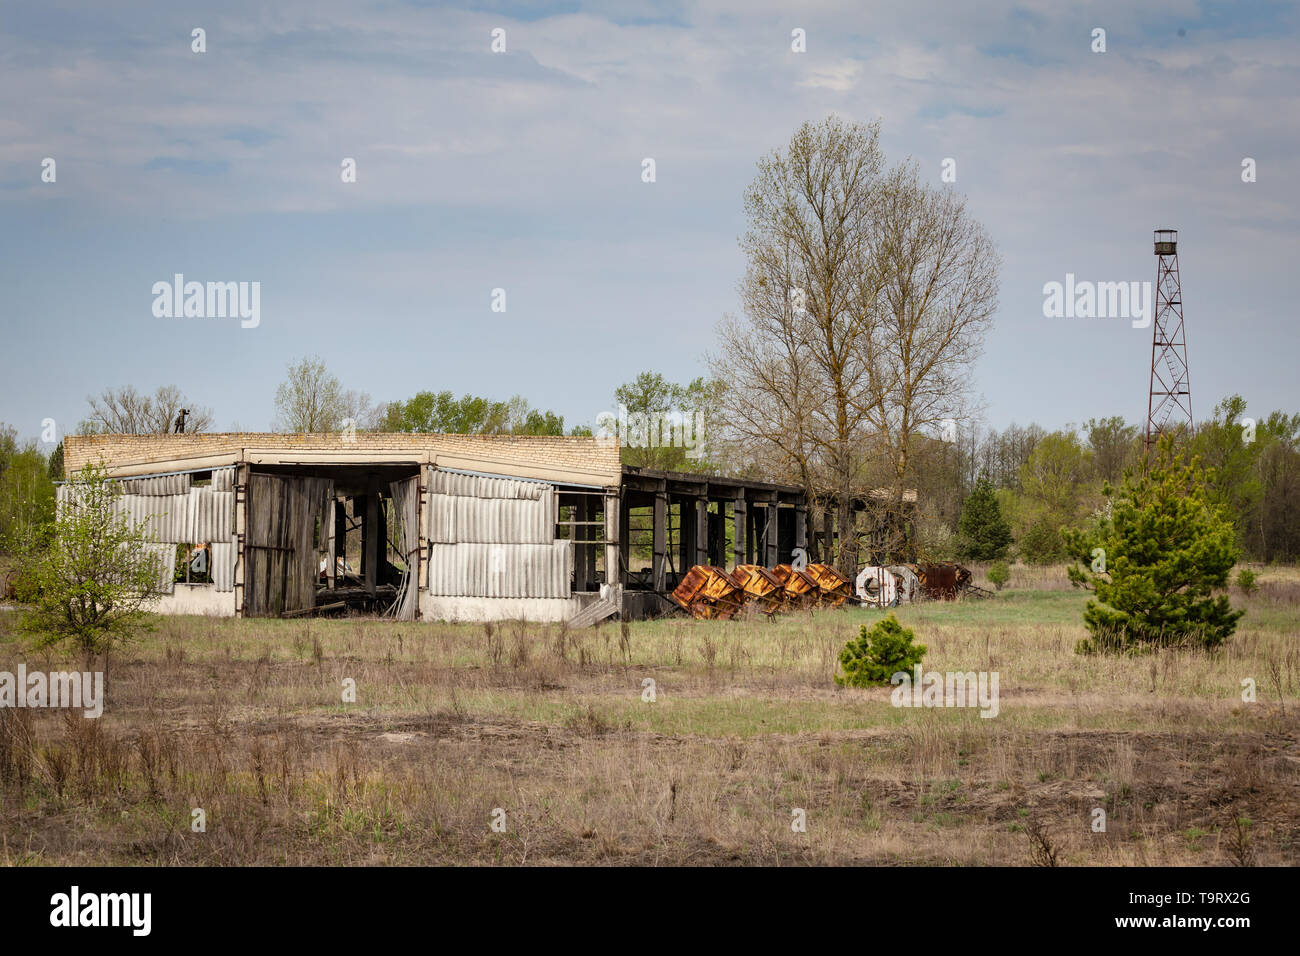 Collapsed farm stable and watchtower in Belarus Chernobyl exclusion zone, - Stock Image